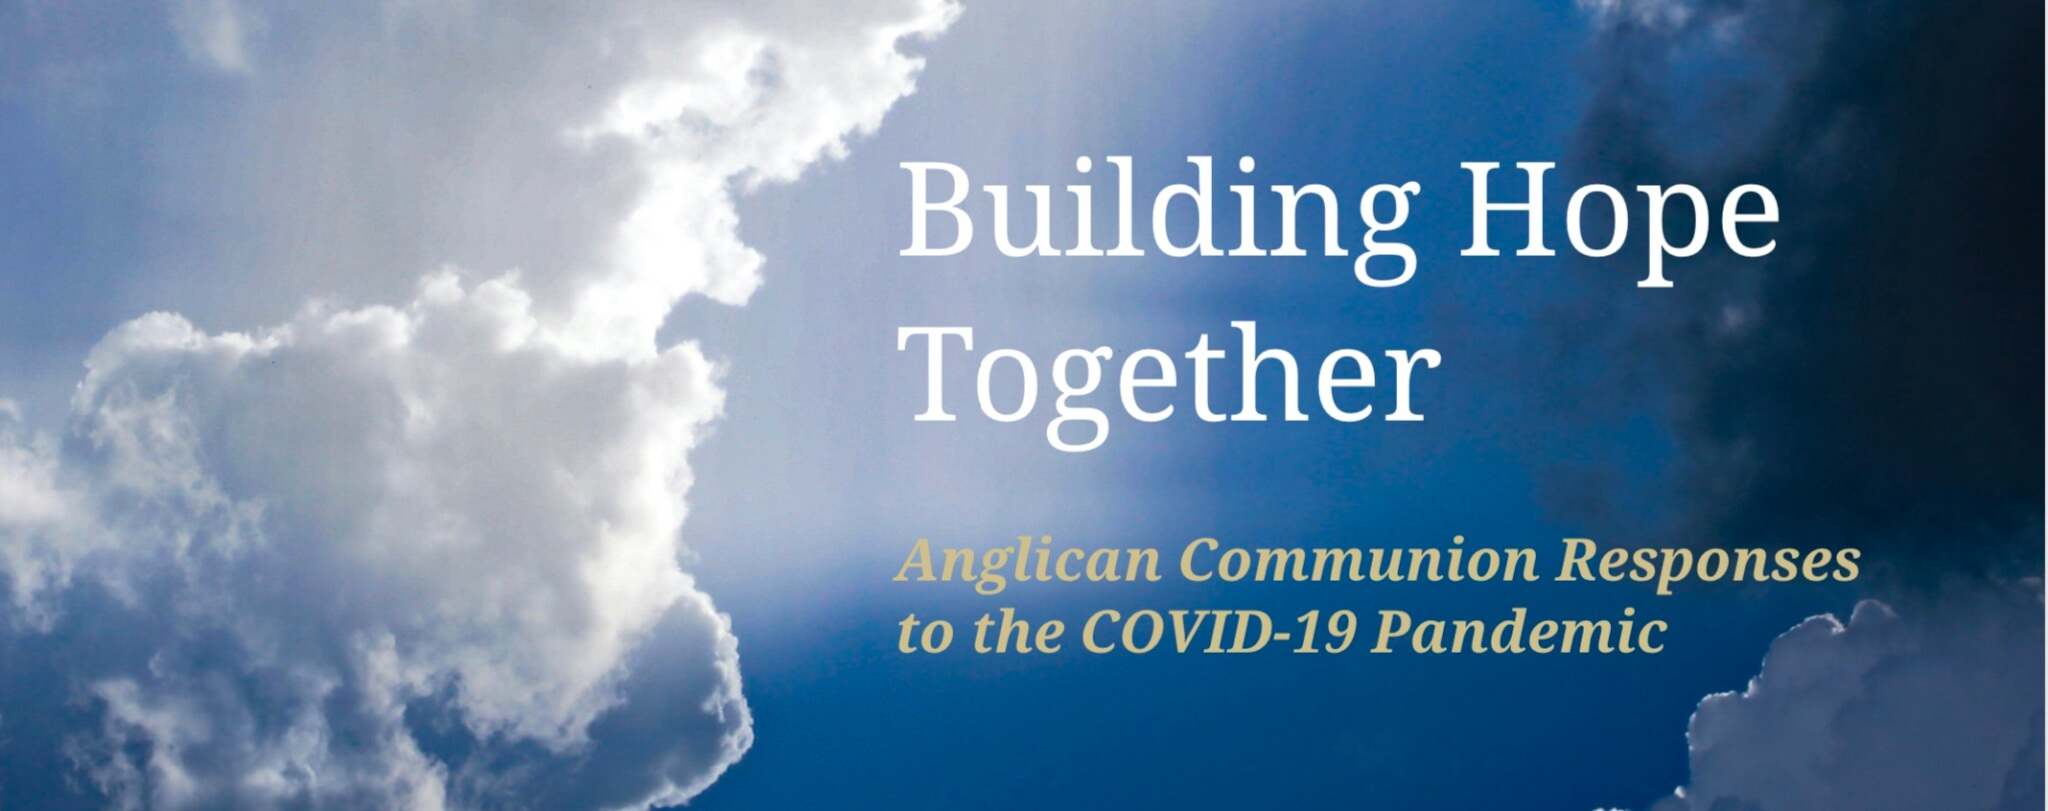 Building Hope Together image